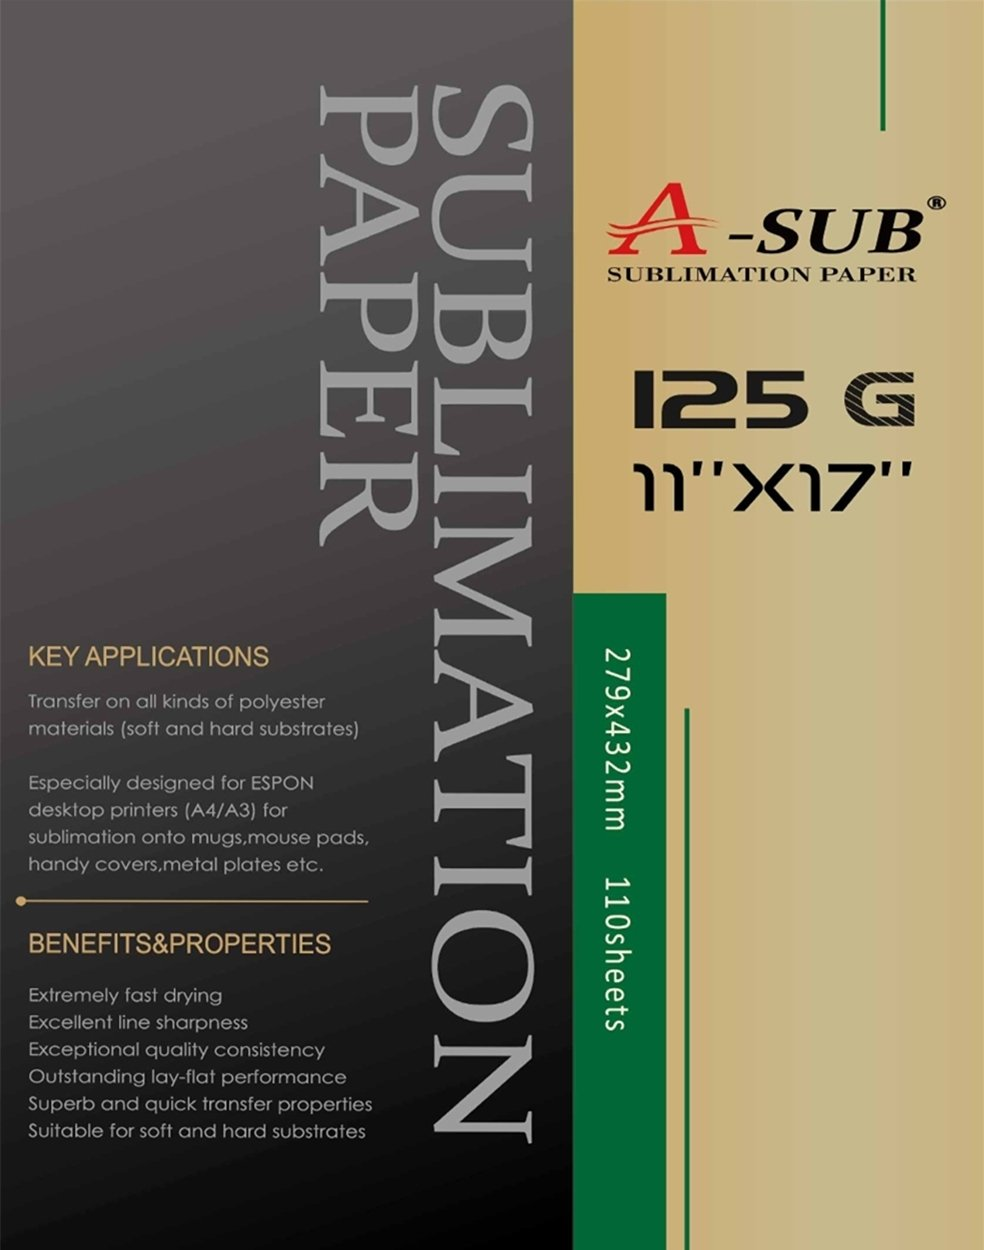 A-SUB Sublimation Paper 11x17 inch for All Inkjet Printer with Sublimation Ink,110 Sheets